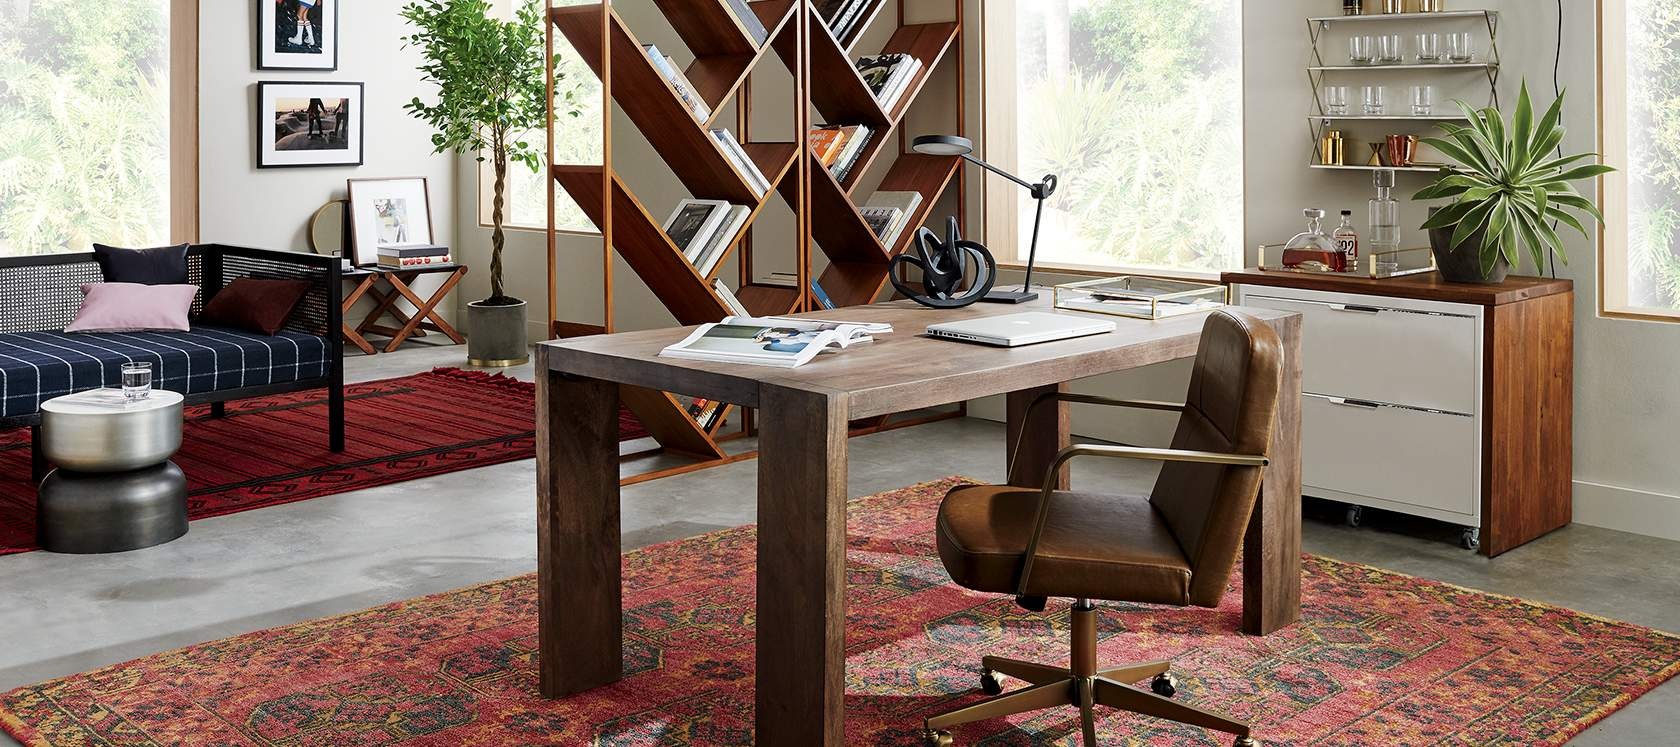 Office Furniture: Home Office Furniture And Office Accessories